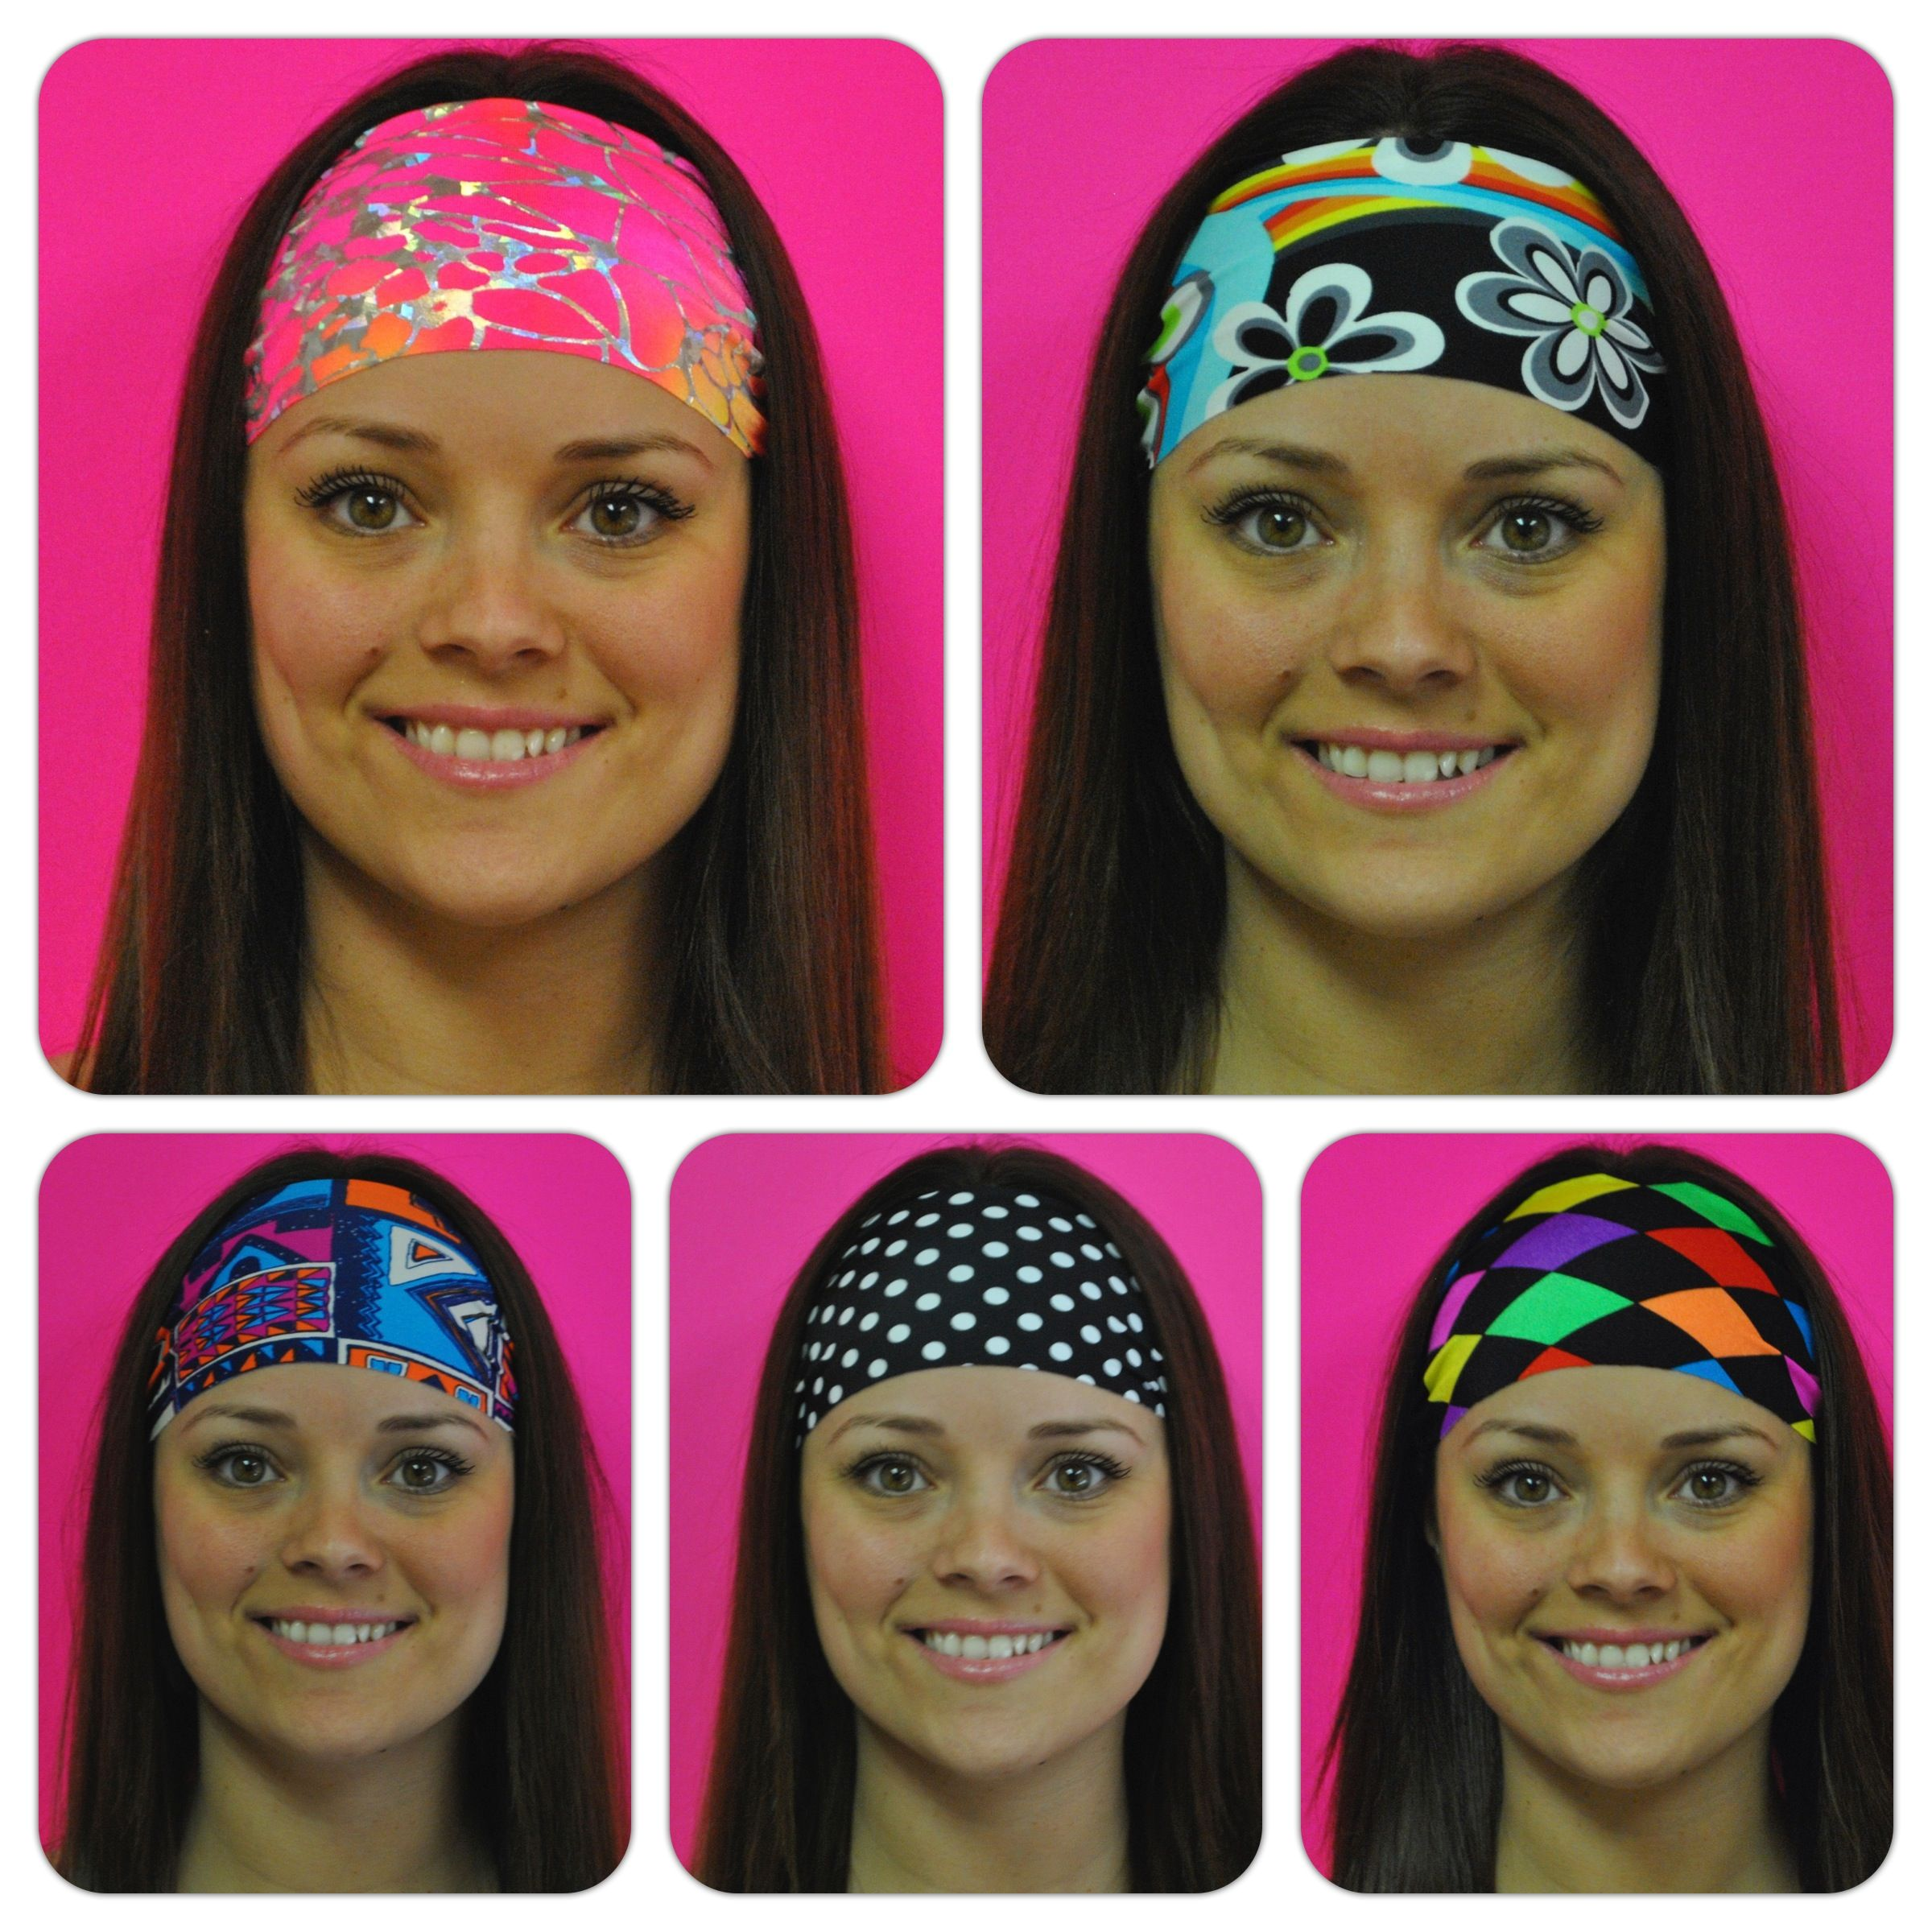 0ff07eb93f5ac73229ee0408b4260cb6 - How To Get A Headband To Stay In Place